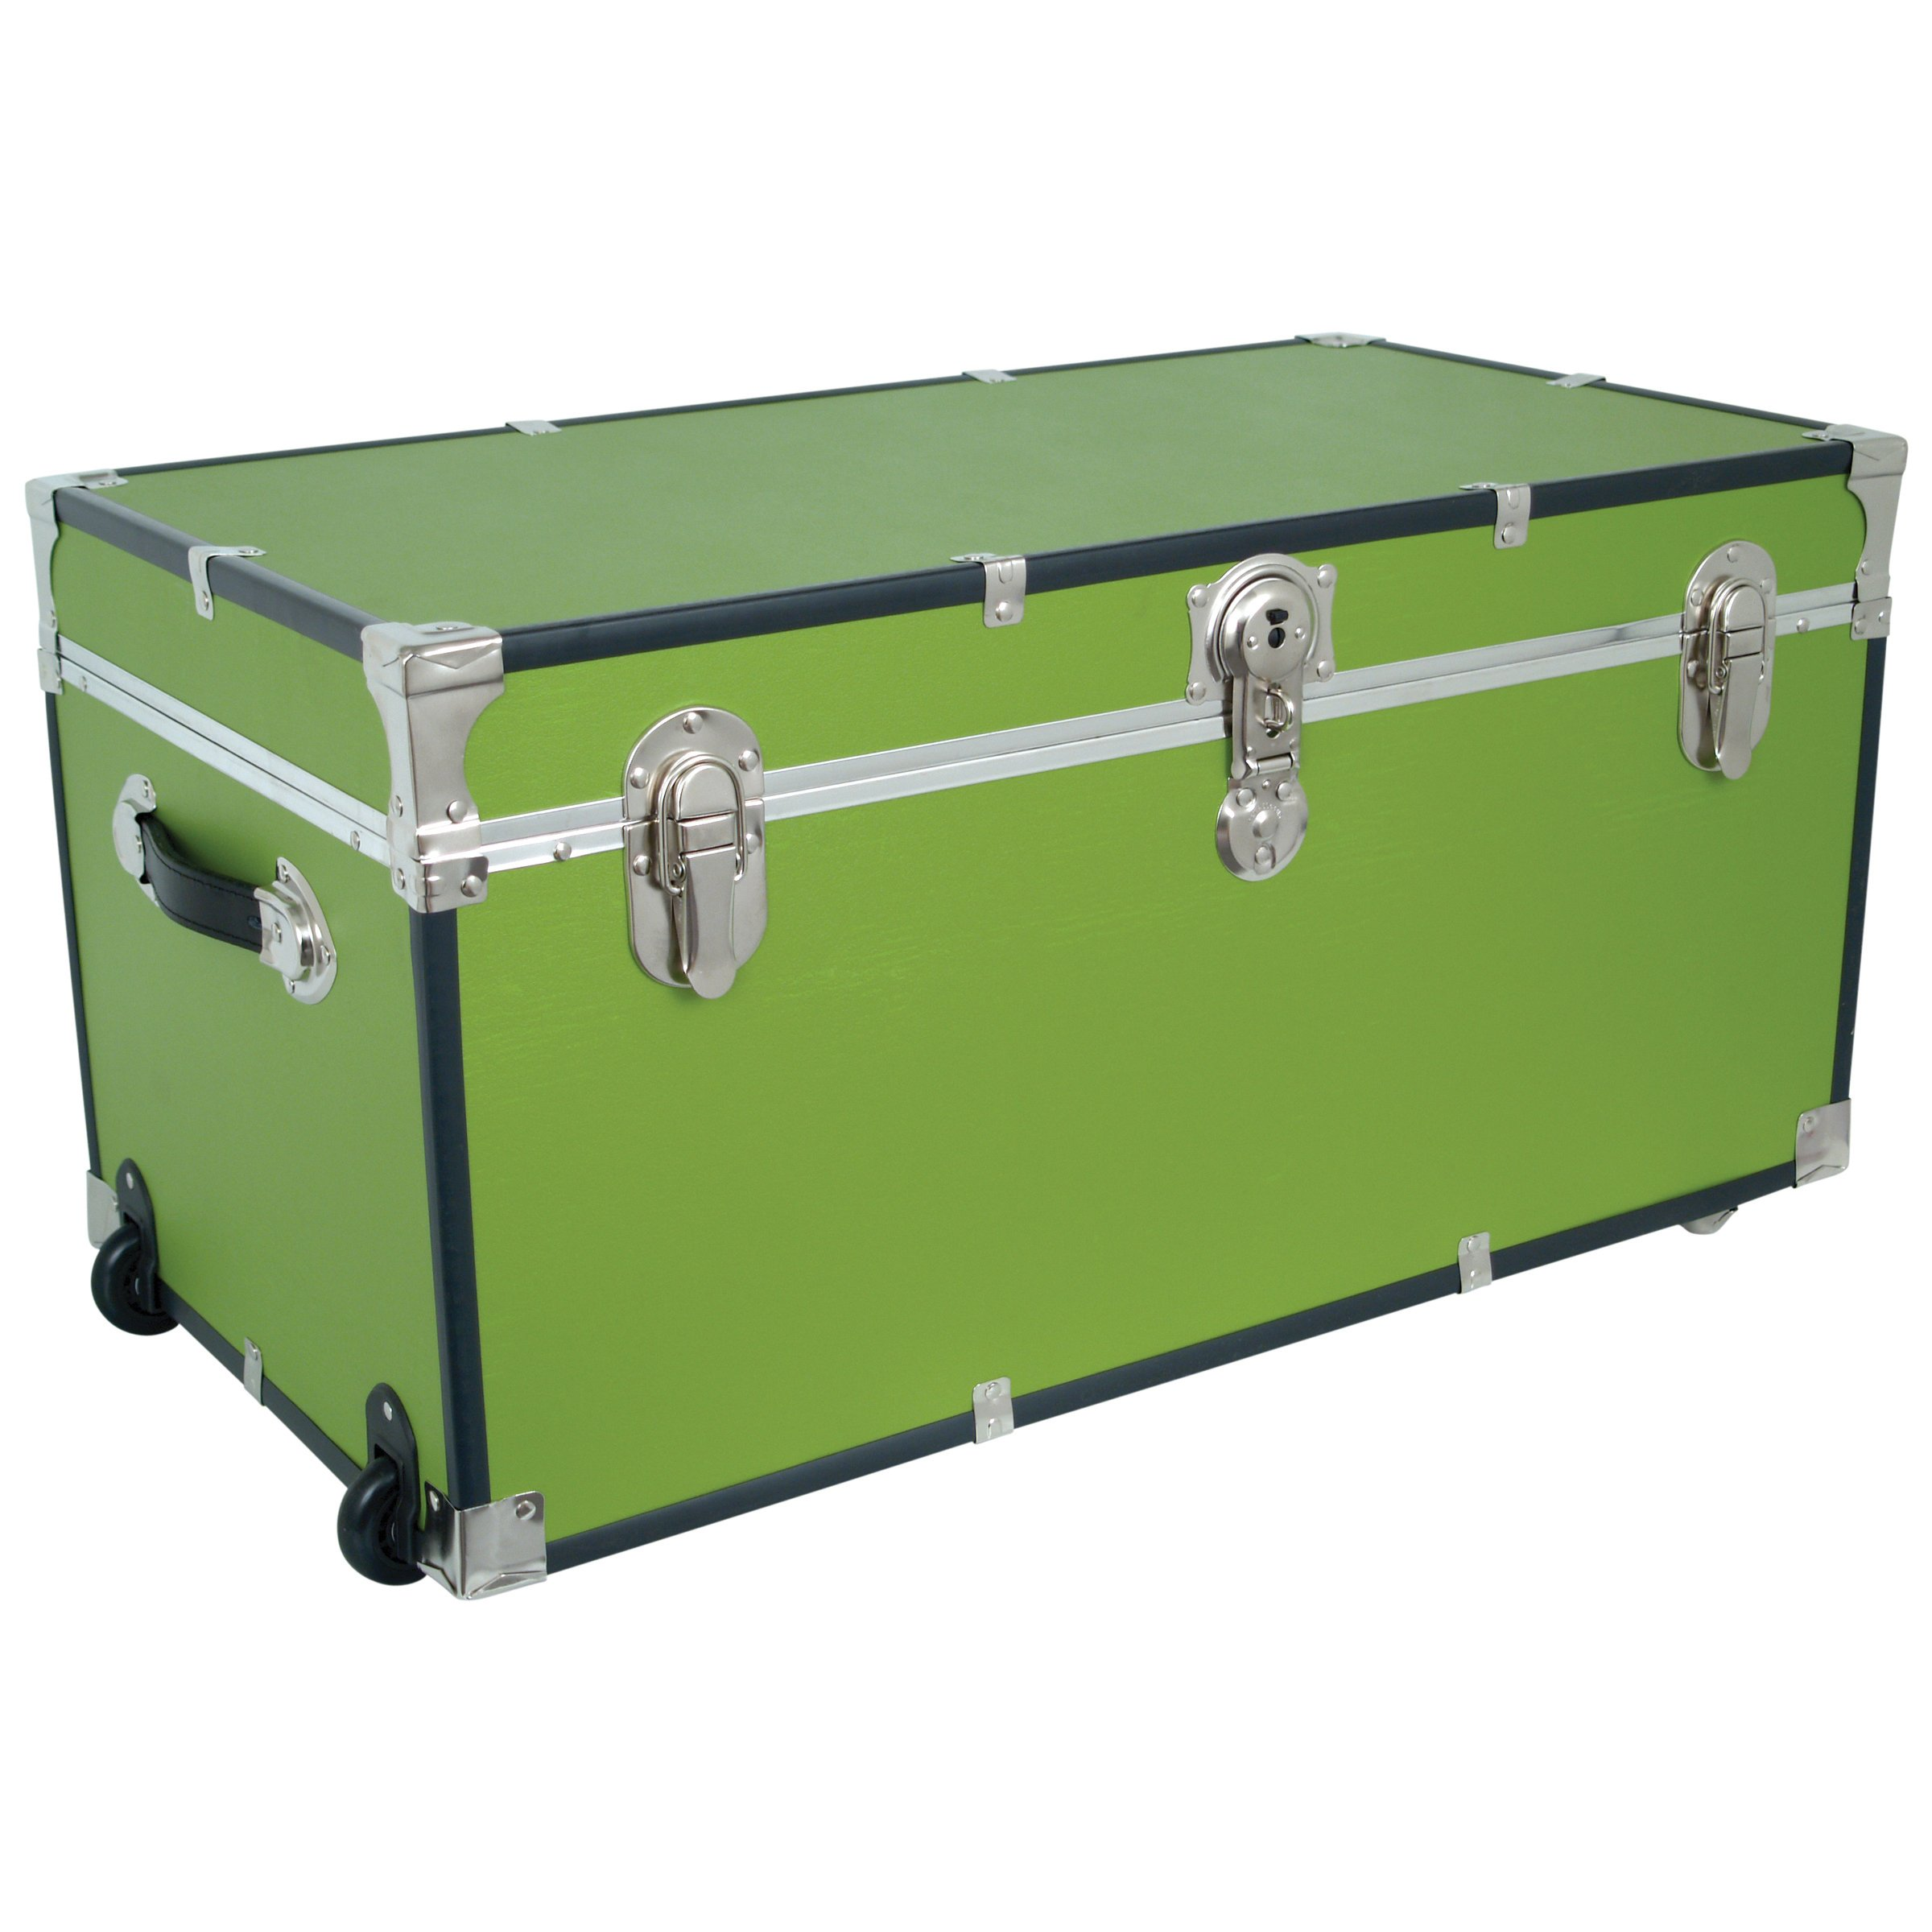 Seward Trunks Oversized Footlocker Trunk with Paper Lining and Wheels, Lime Green, 31-Inch (SWD5135-91)